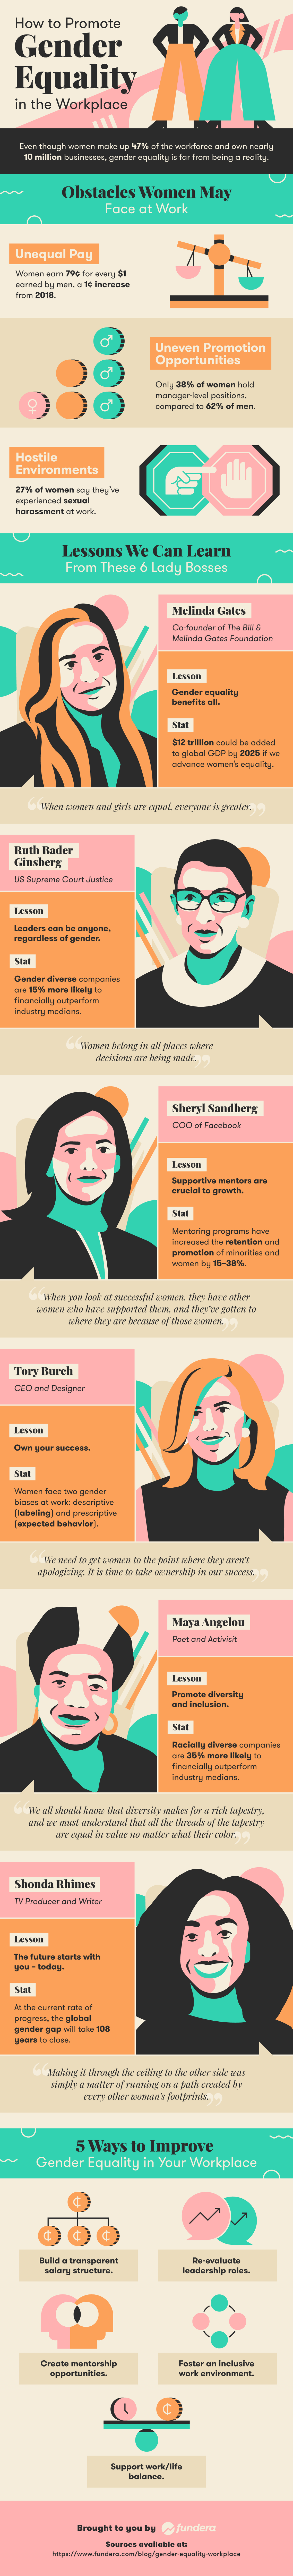 Gender Equality in the Workplace: Women Leaders' Point of View - Infographic